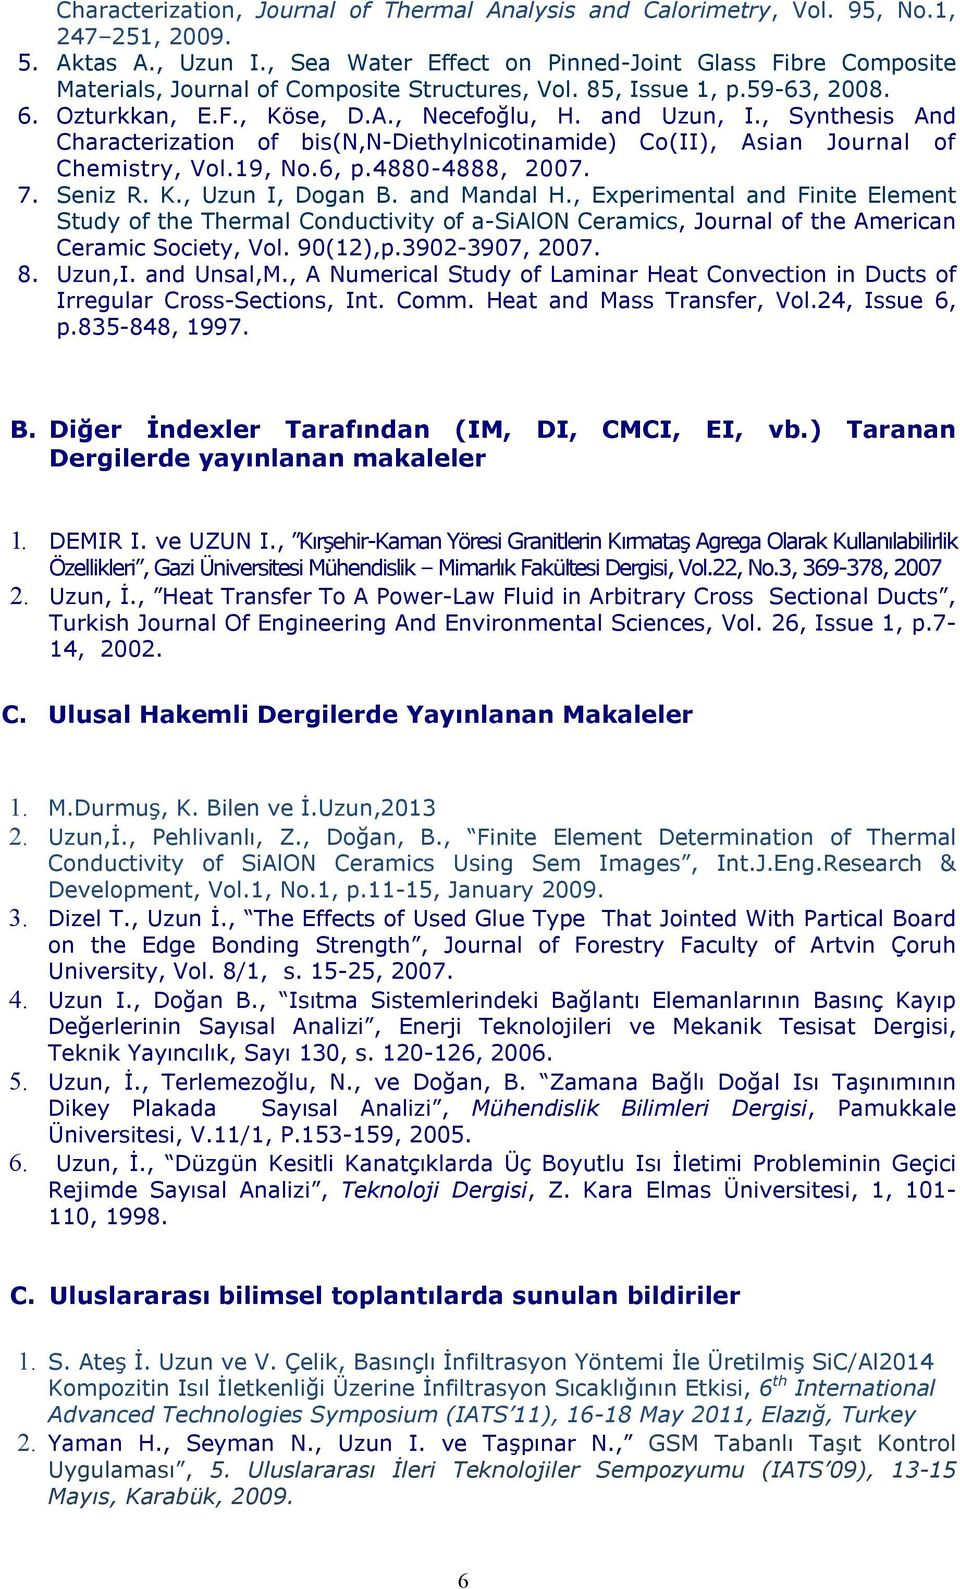 , Synthesis And Characterization of bis(n,n-diethylnicotinamide) Co(II), Asian Journal of Chemistry, Vol.19, No.6, p.4880-4888, 2007. 7. Seniz R. K., Uzun I, Dogan B. and Mandal H.